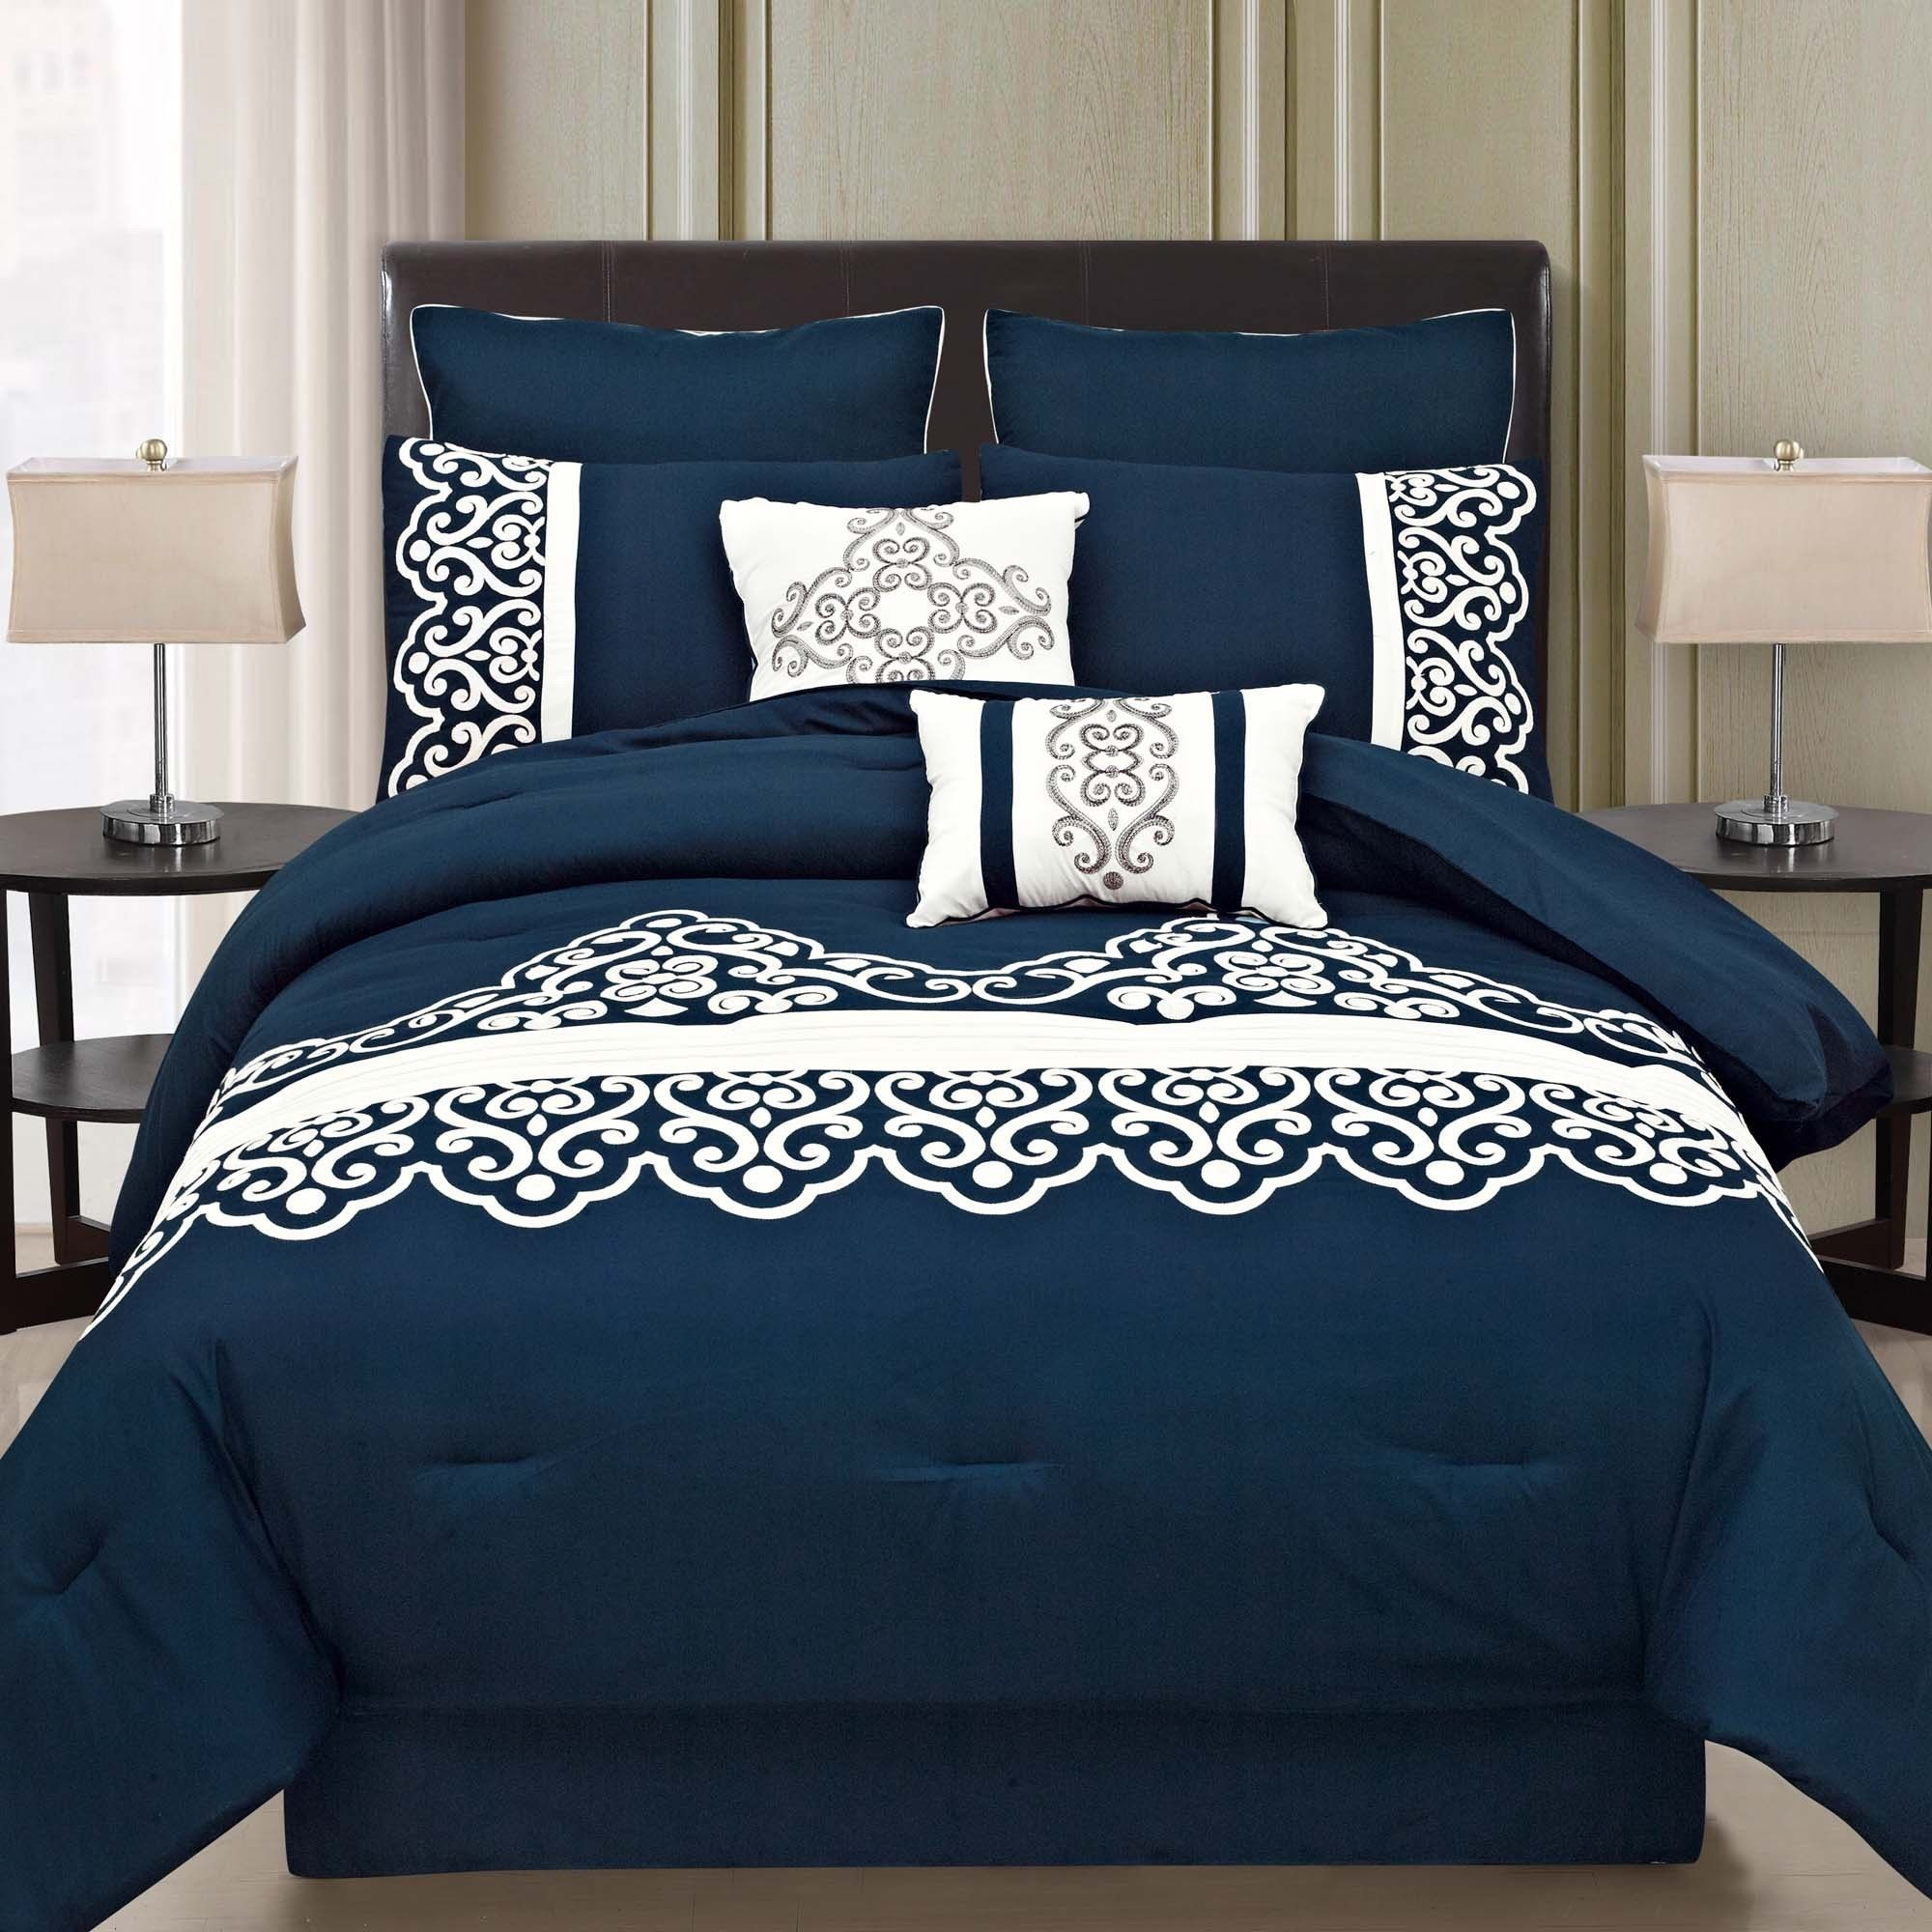 blue bedding double cover cheap and bed size king white navy comforters of comforter green grey full sets